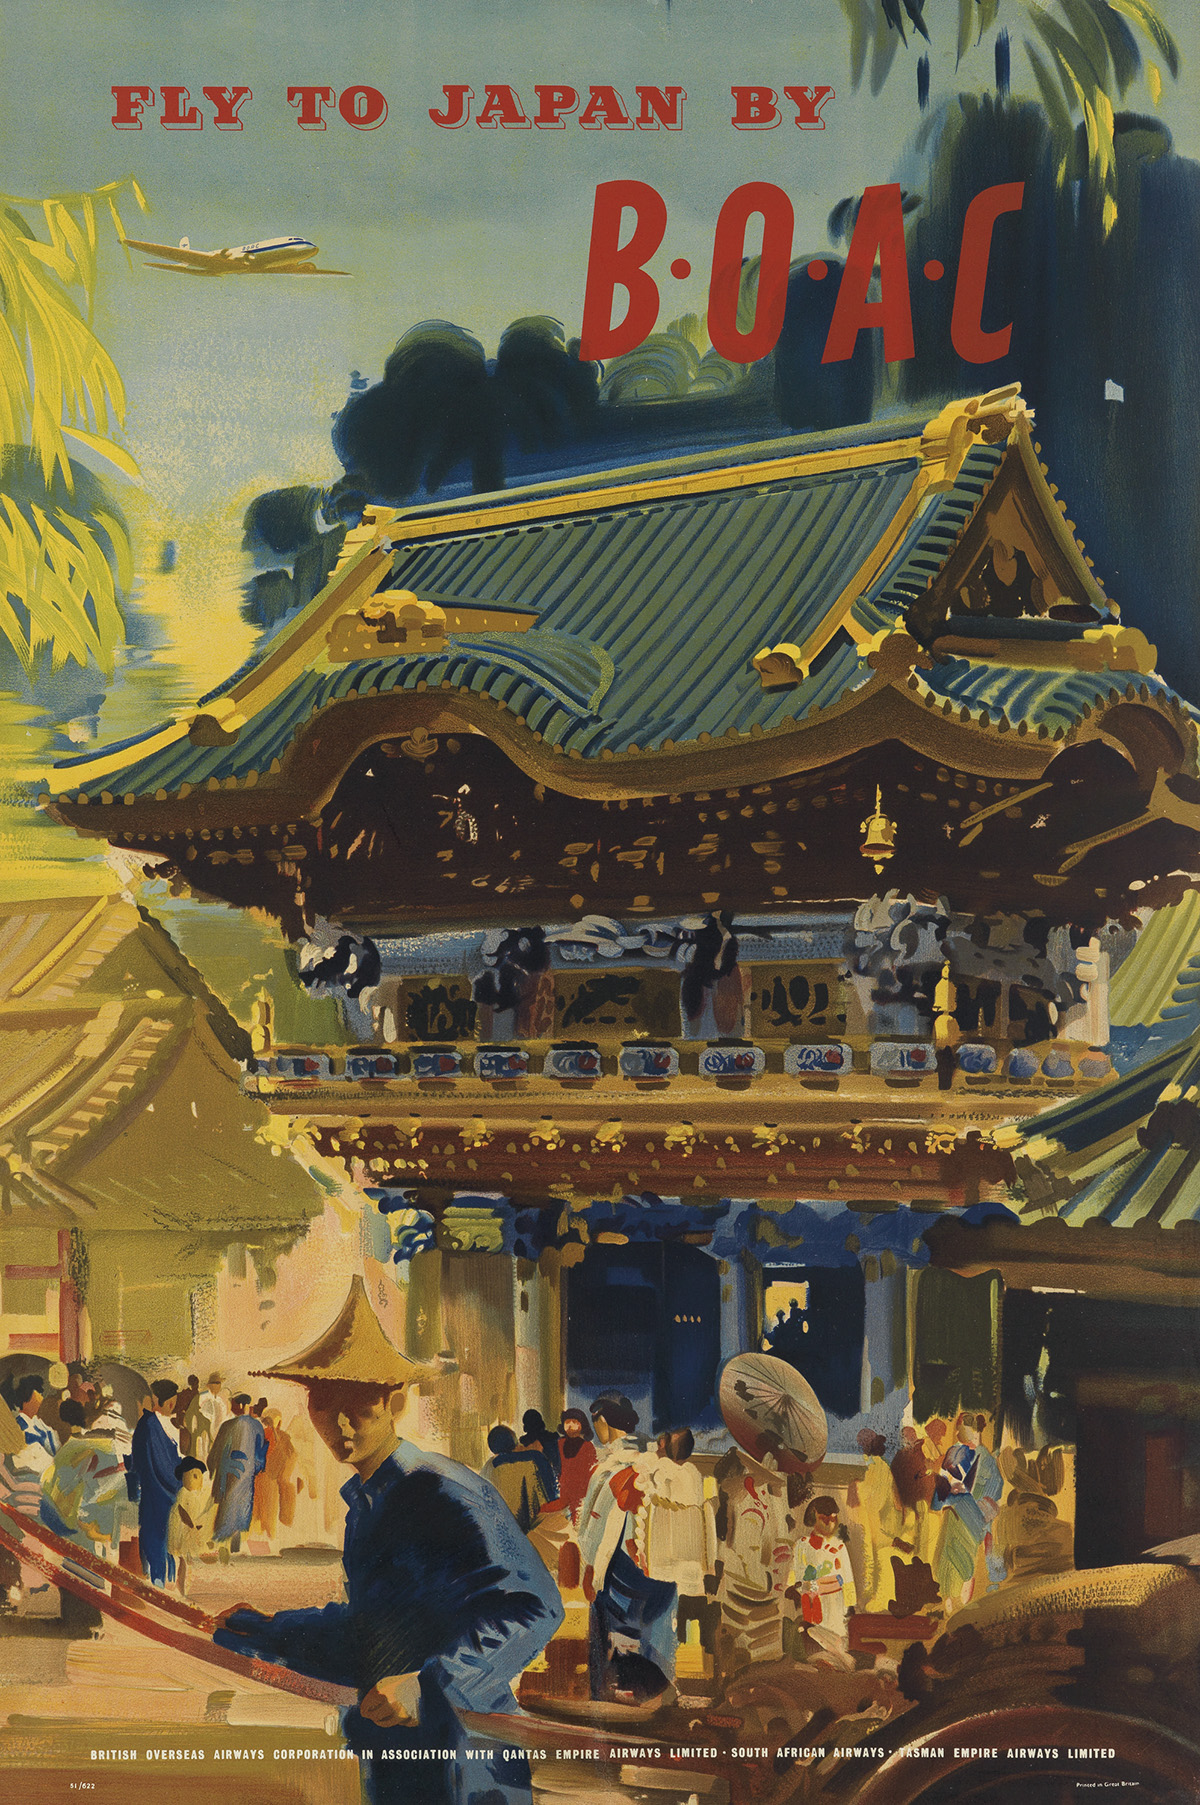 FRANK-WOOTTON-(1914-1998)-FLY-TO-JAPAN-BY-BOAC-1951-30x20-in